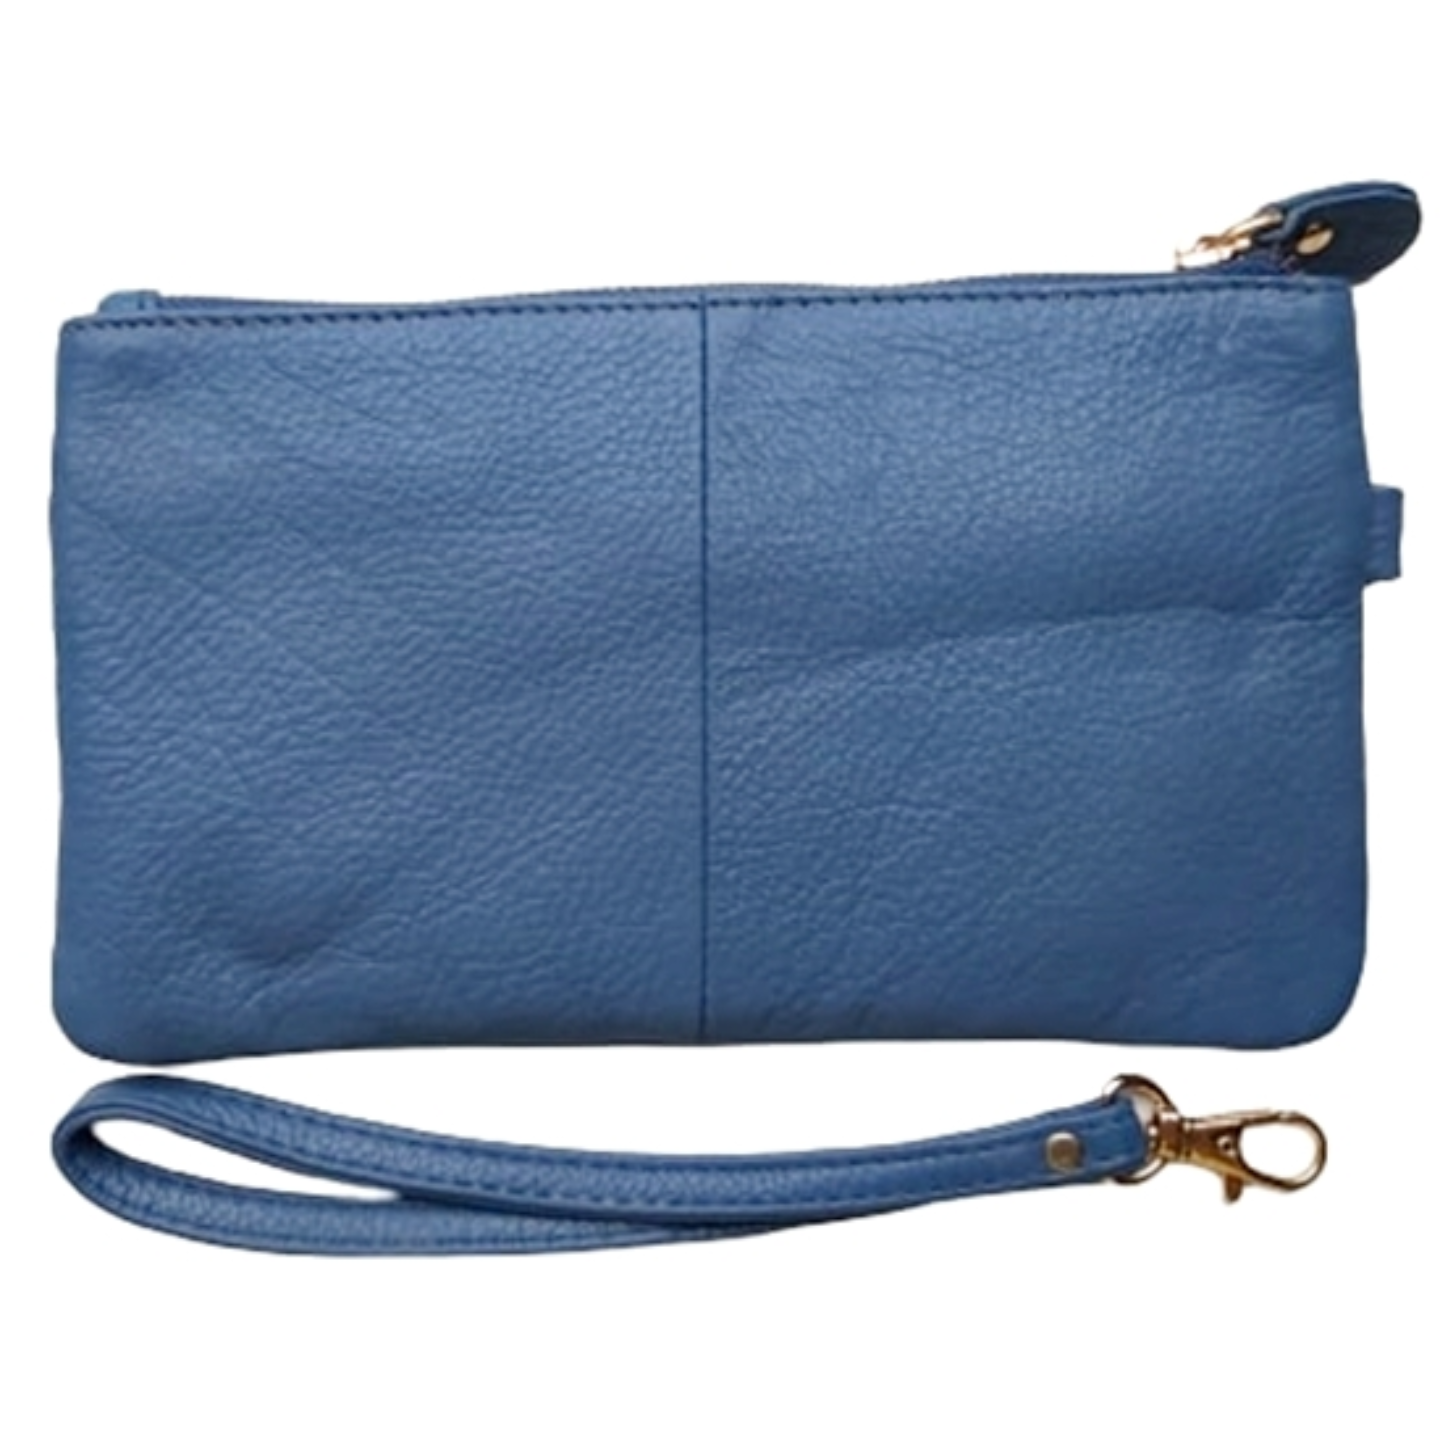 VIVO WALLET WRISTLET  SKY BLUE